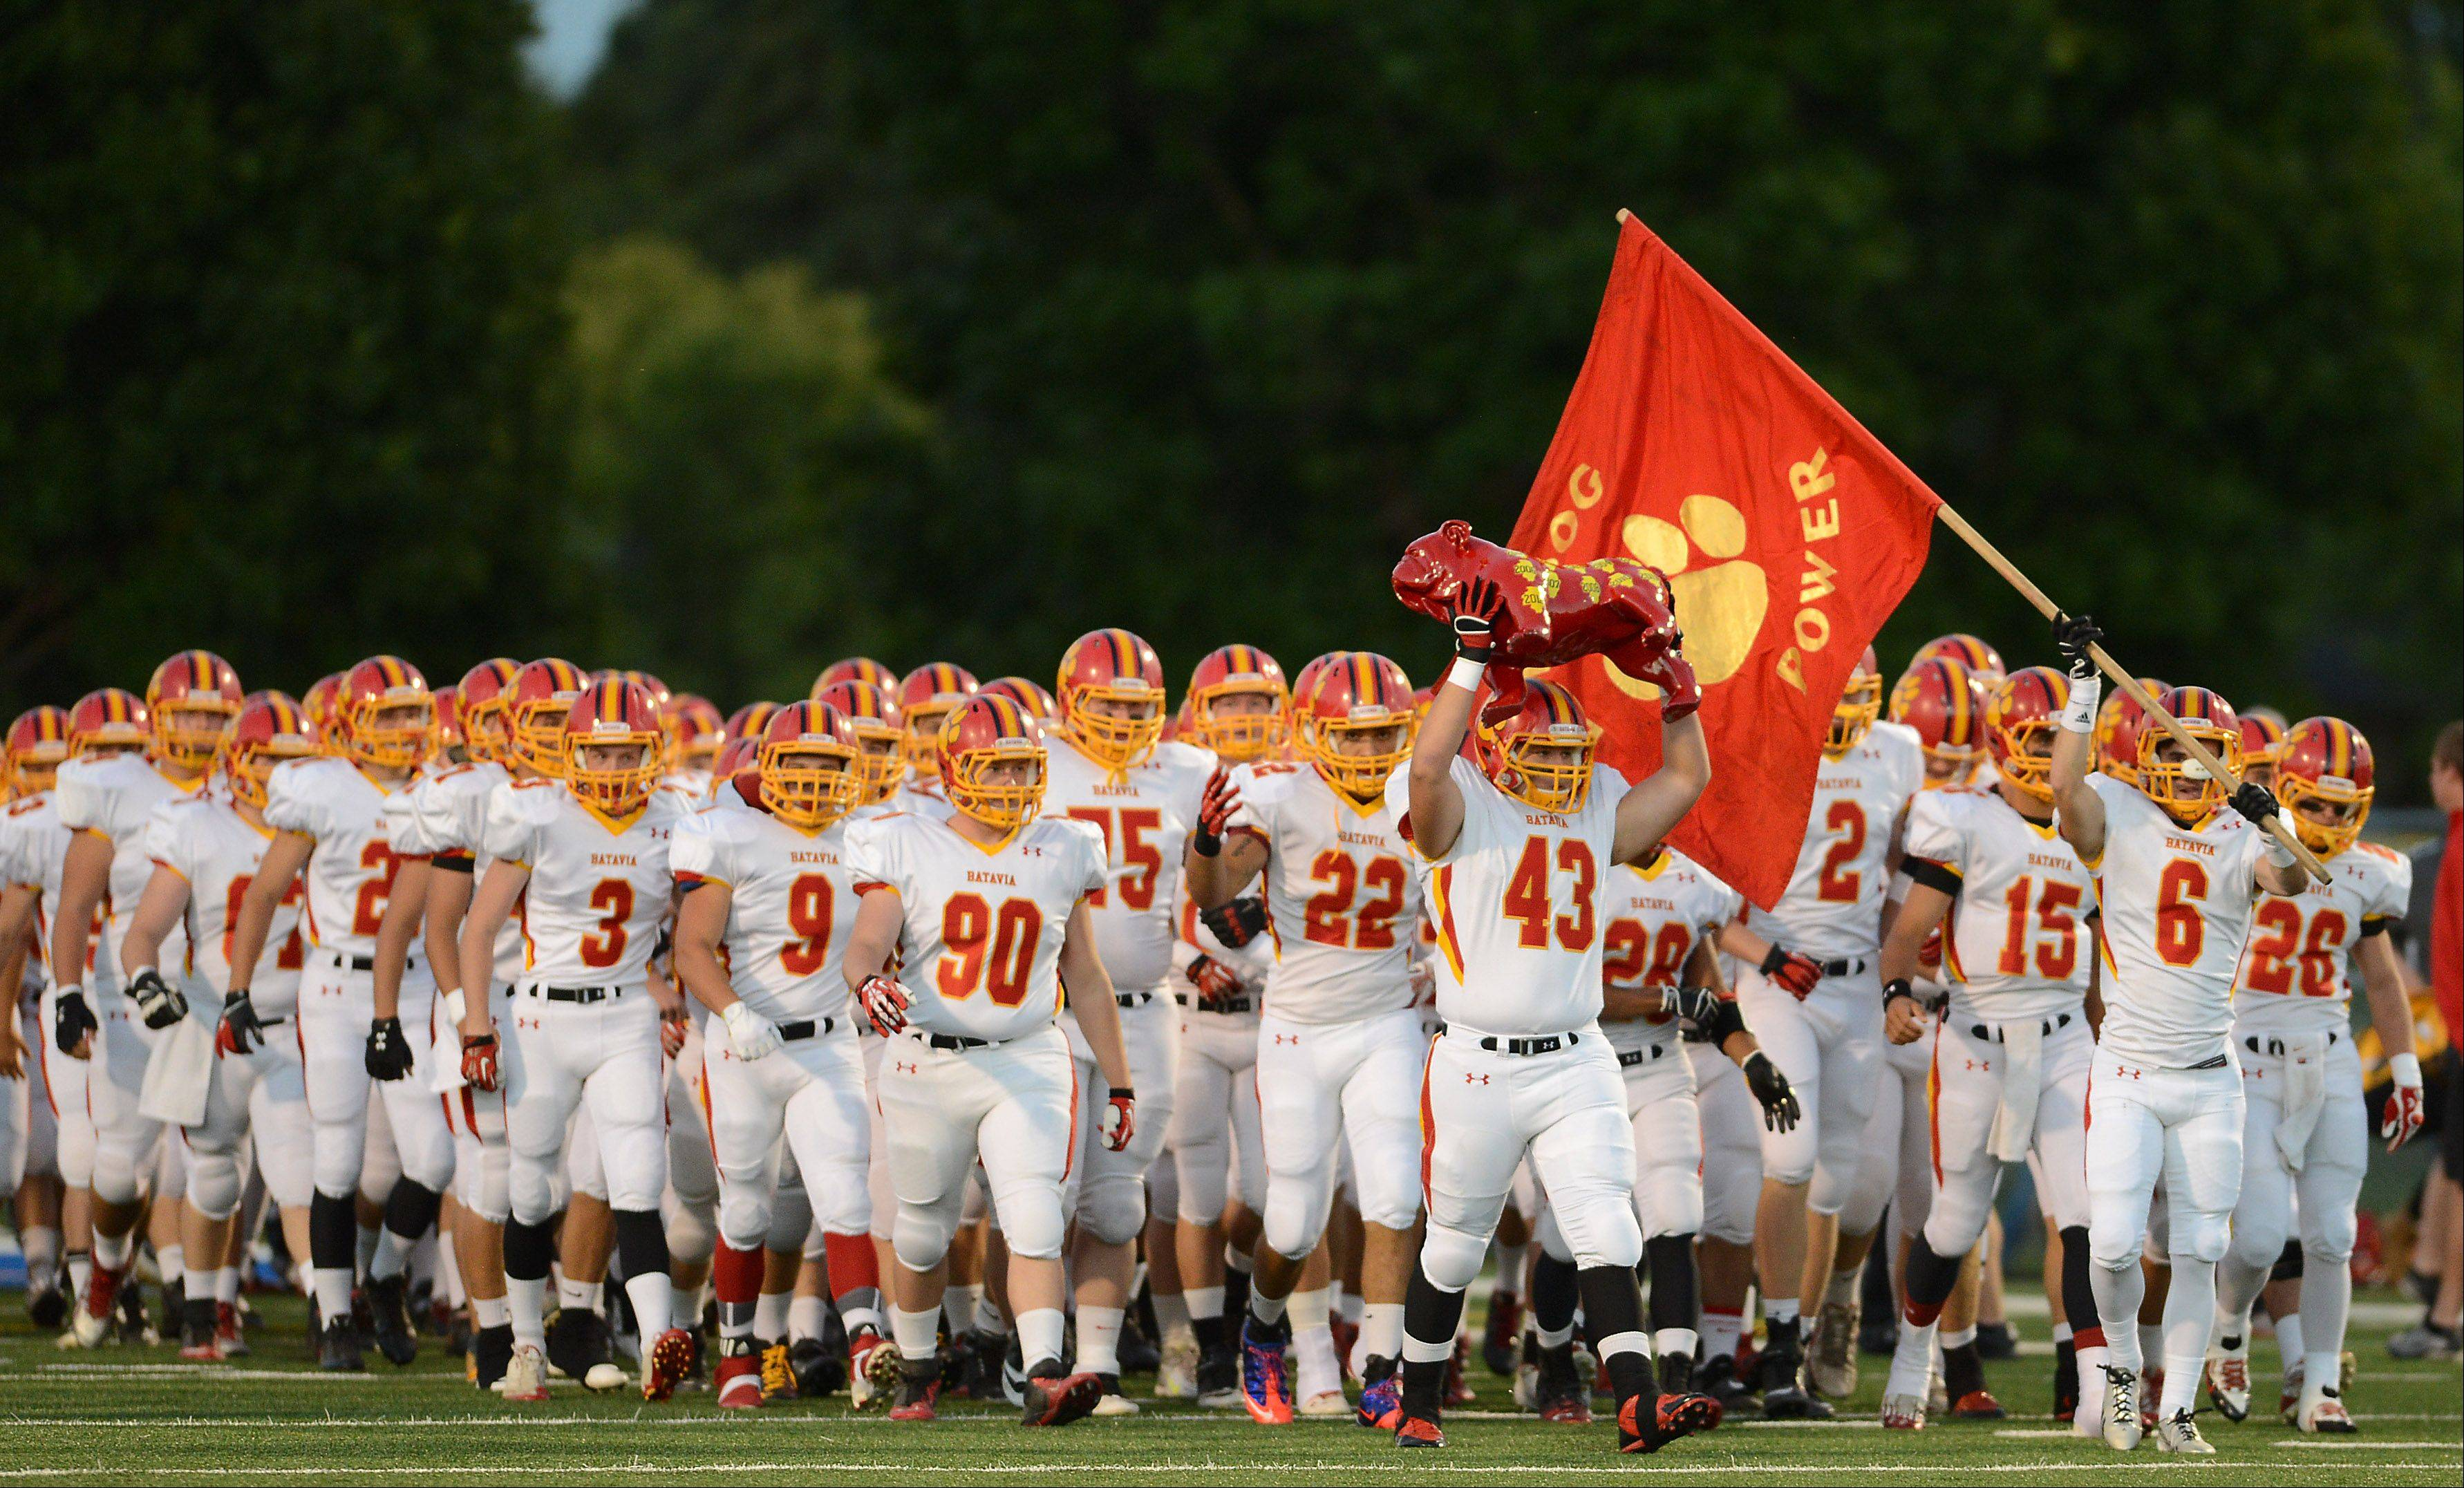 Batavia prepares to play Geneva in this file photo from Friday, September 13, 2013. The Batavia Bulldogs play for a state championship Saturday in DeKalb.